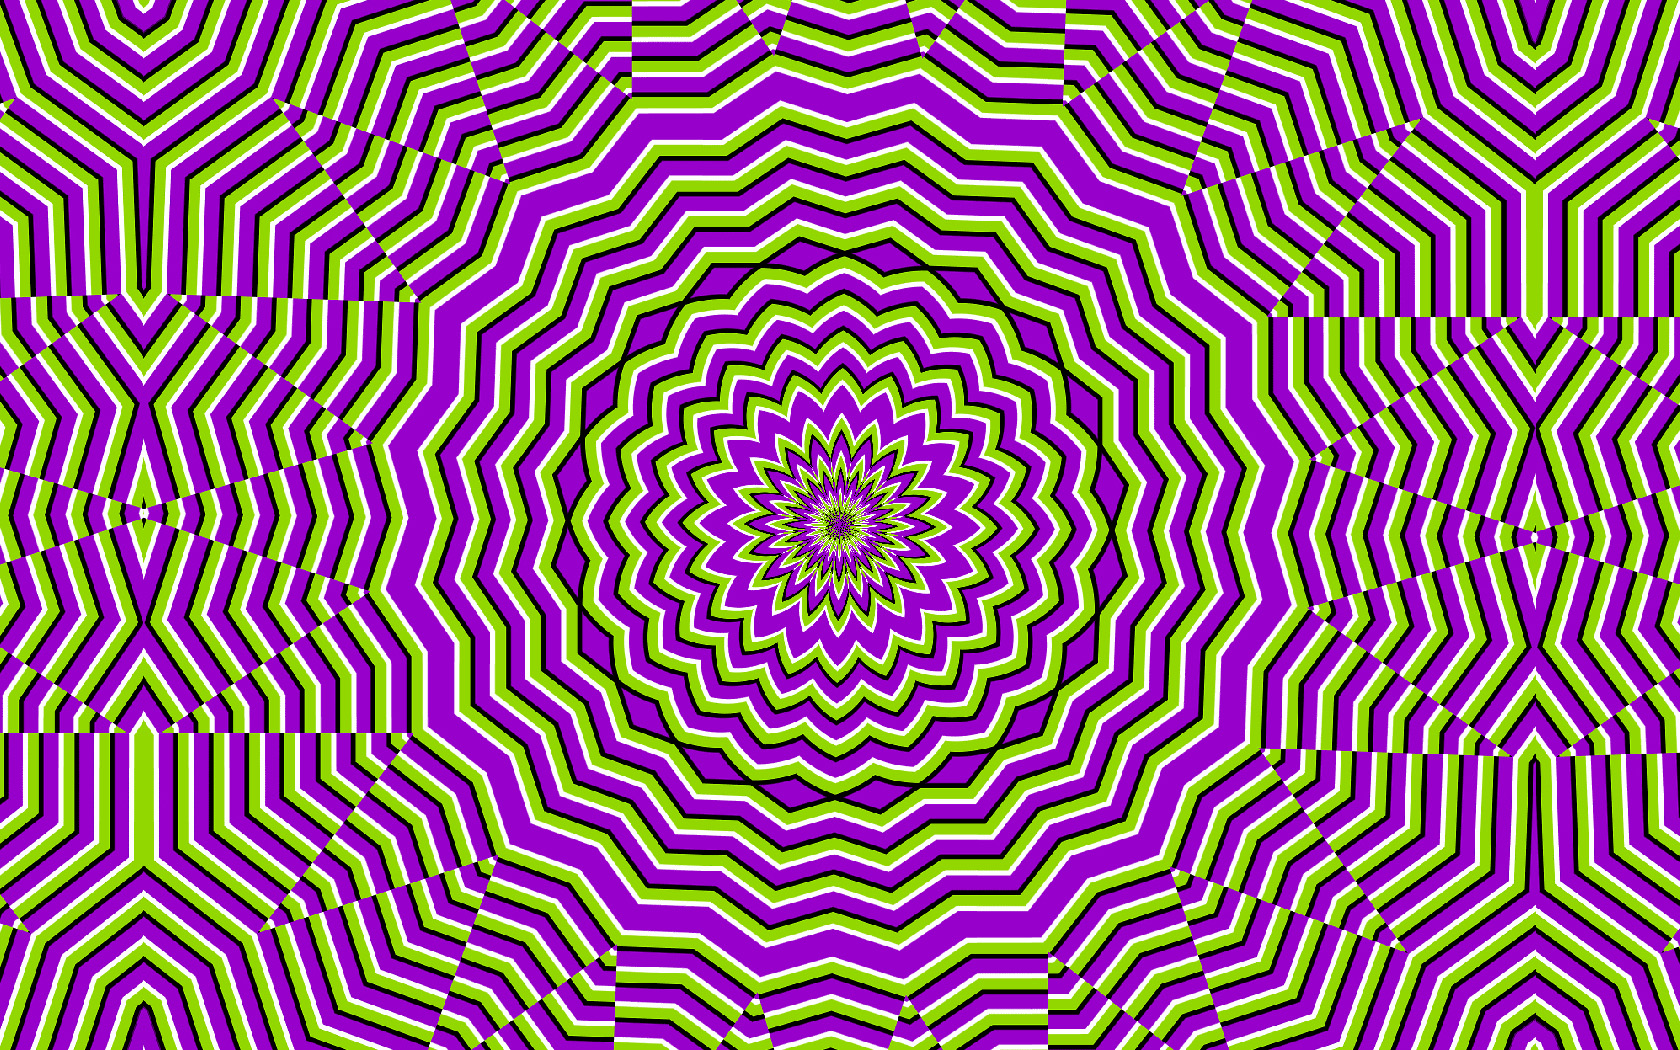 Teaser Teasers Moving Optical Illusion Purple Hd Wallpaper Pictures 1680x1050